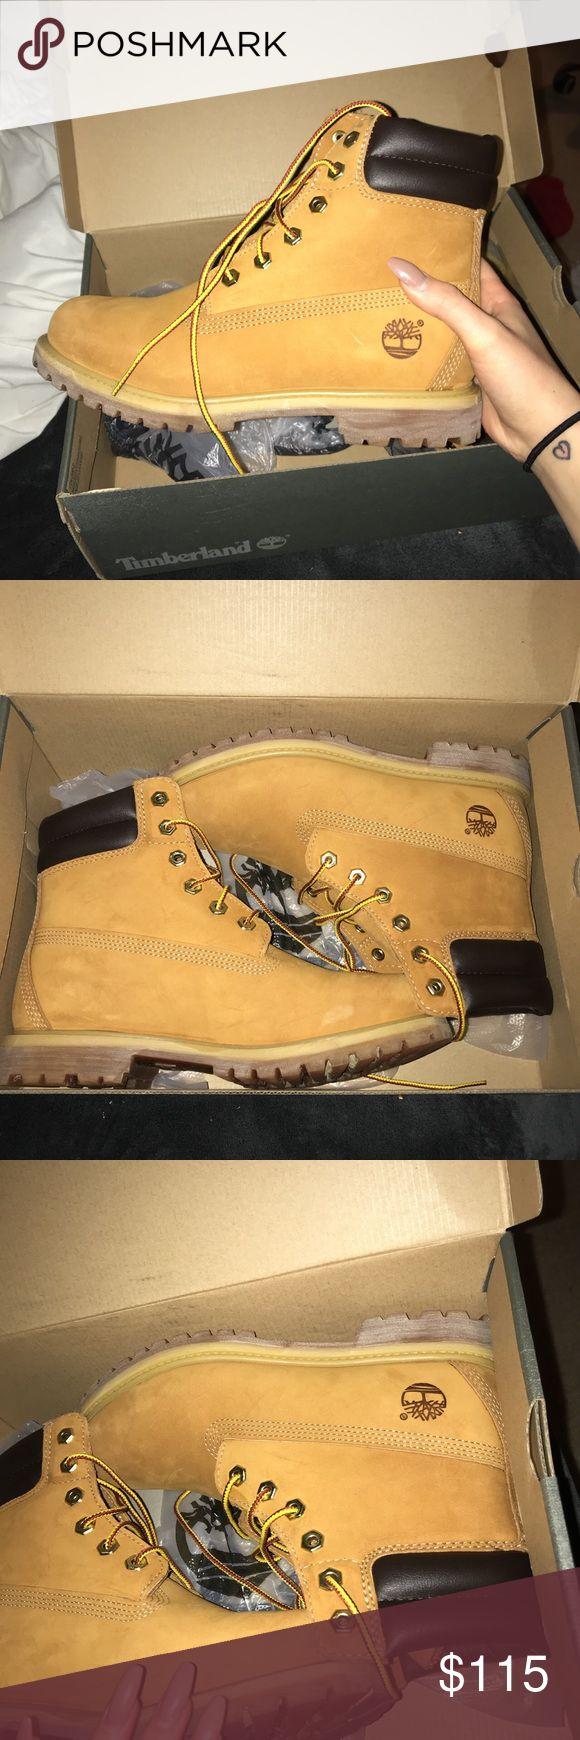 Brand New Timberland Boots Timberland Women's Boots in size 7.5, Only worn once Timberland Shoes